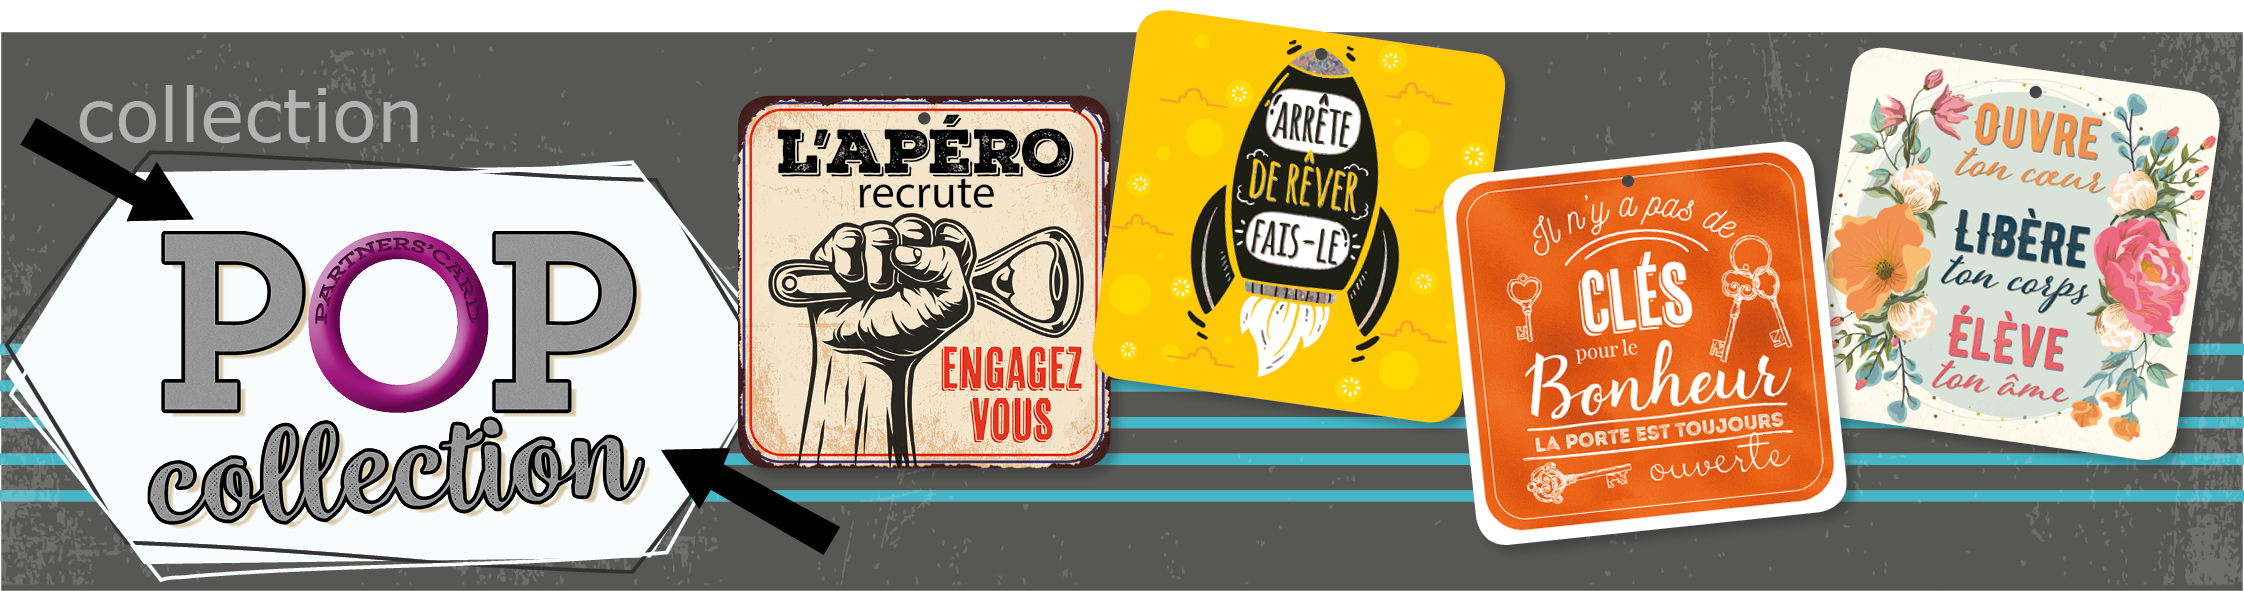 PartnersCard_SITE_POPco_banner.png